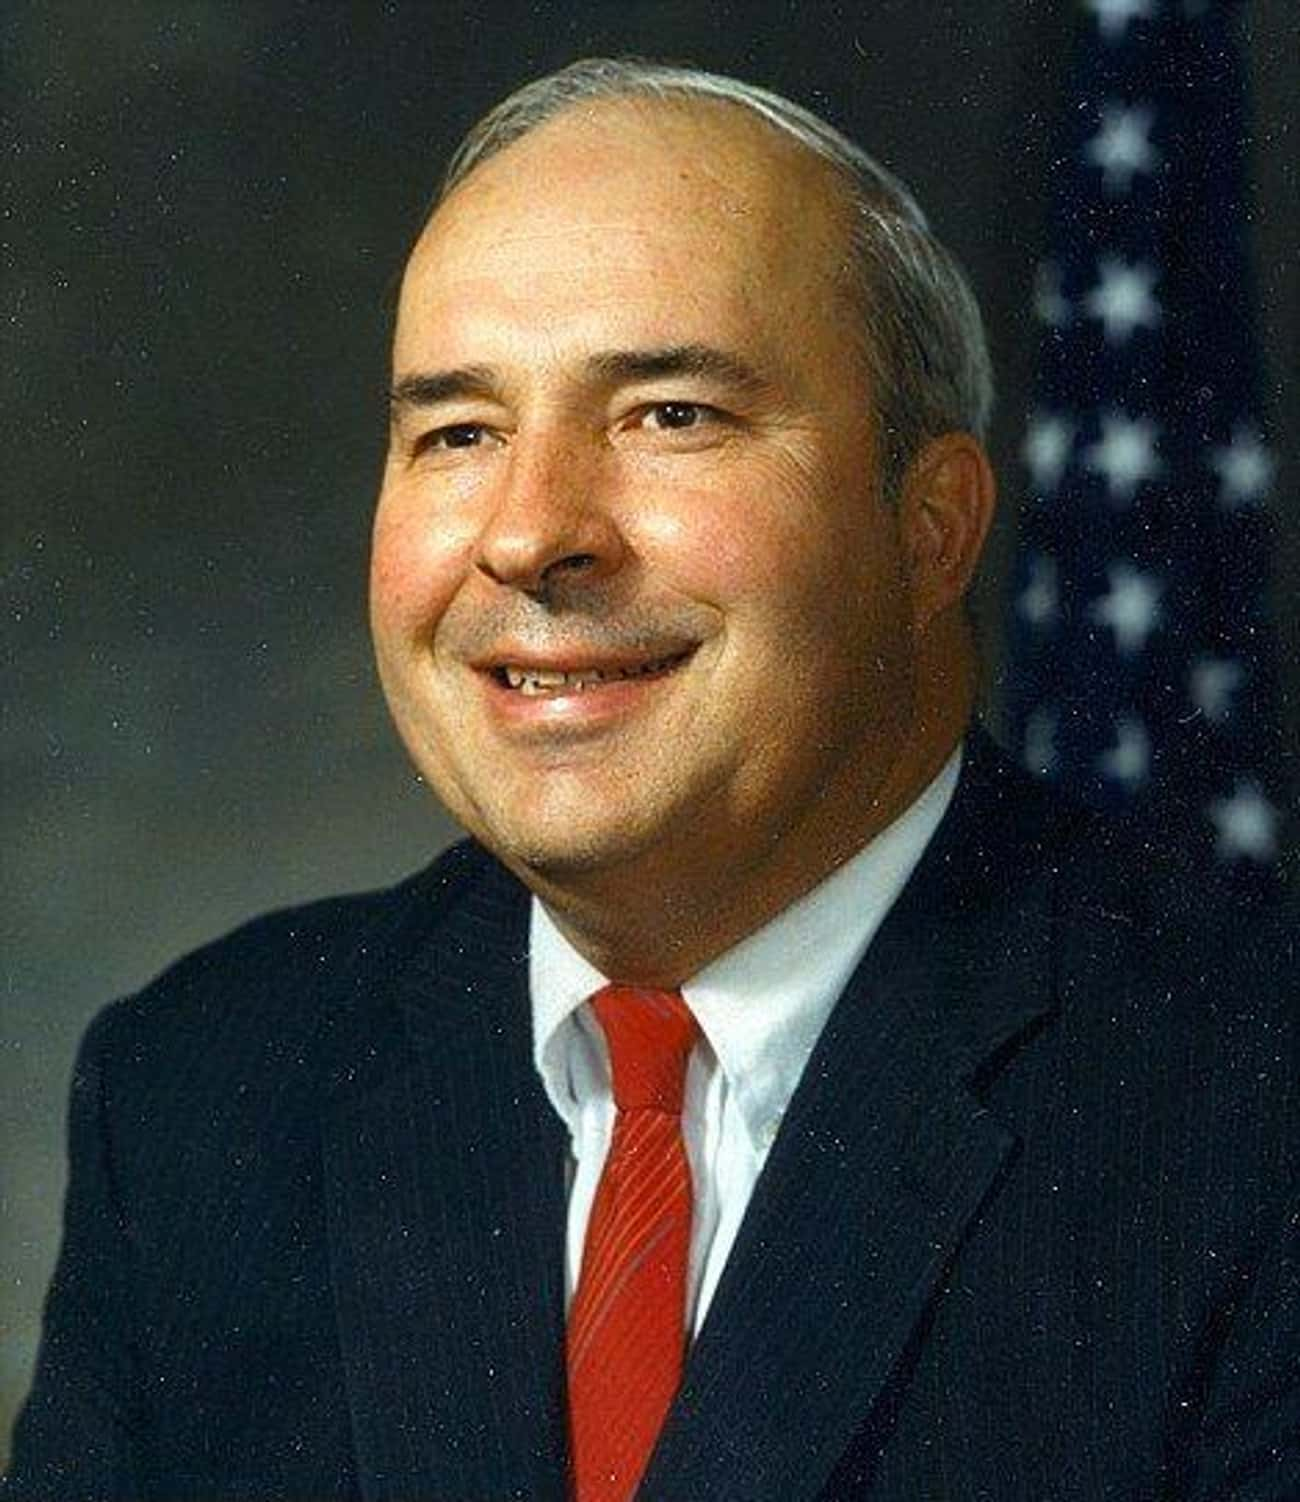 R. Budd Dwyer is listed (or ranked) 4 on the list Unusual Deaths: Bizarre Deaths Of The 20th Century